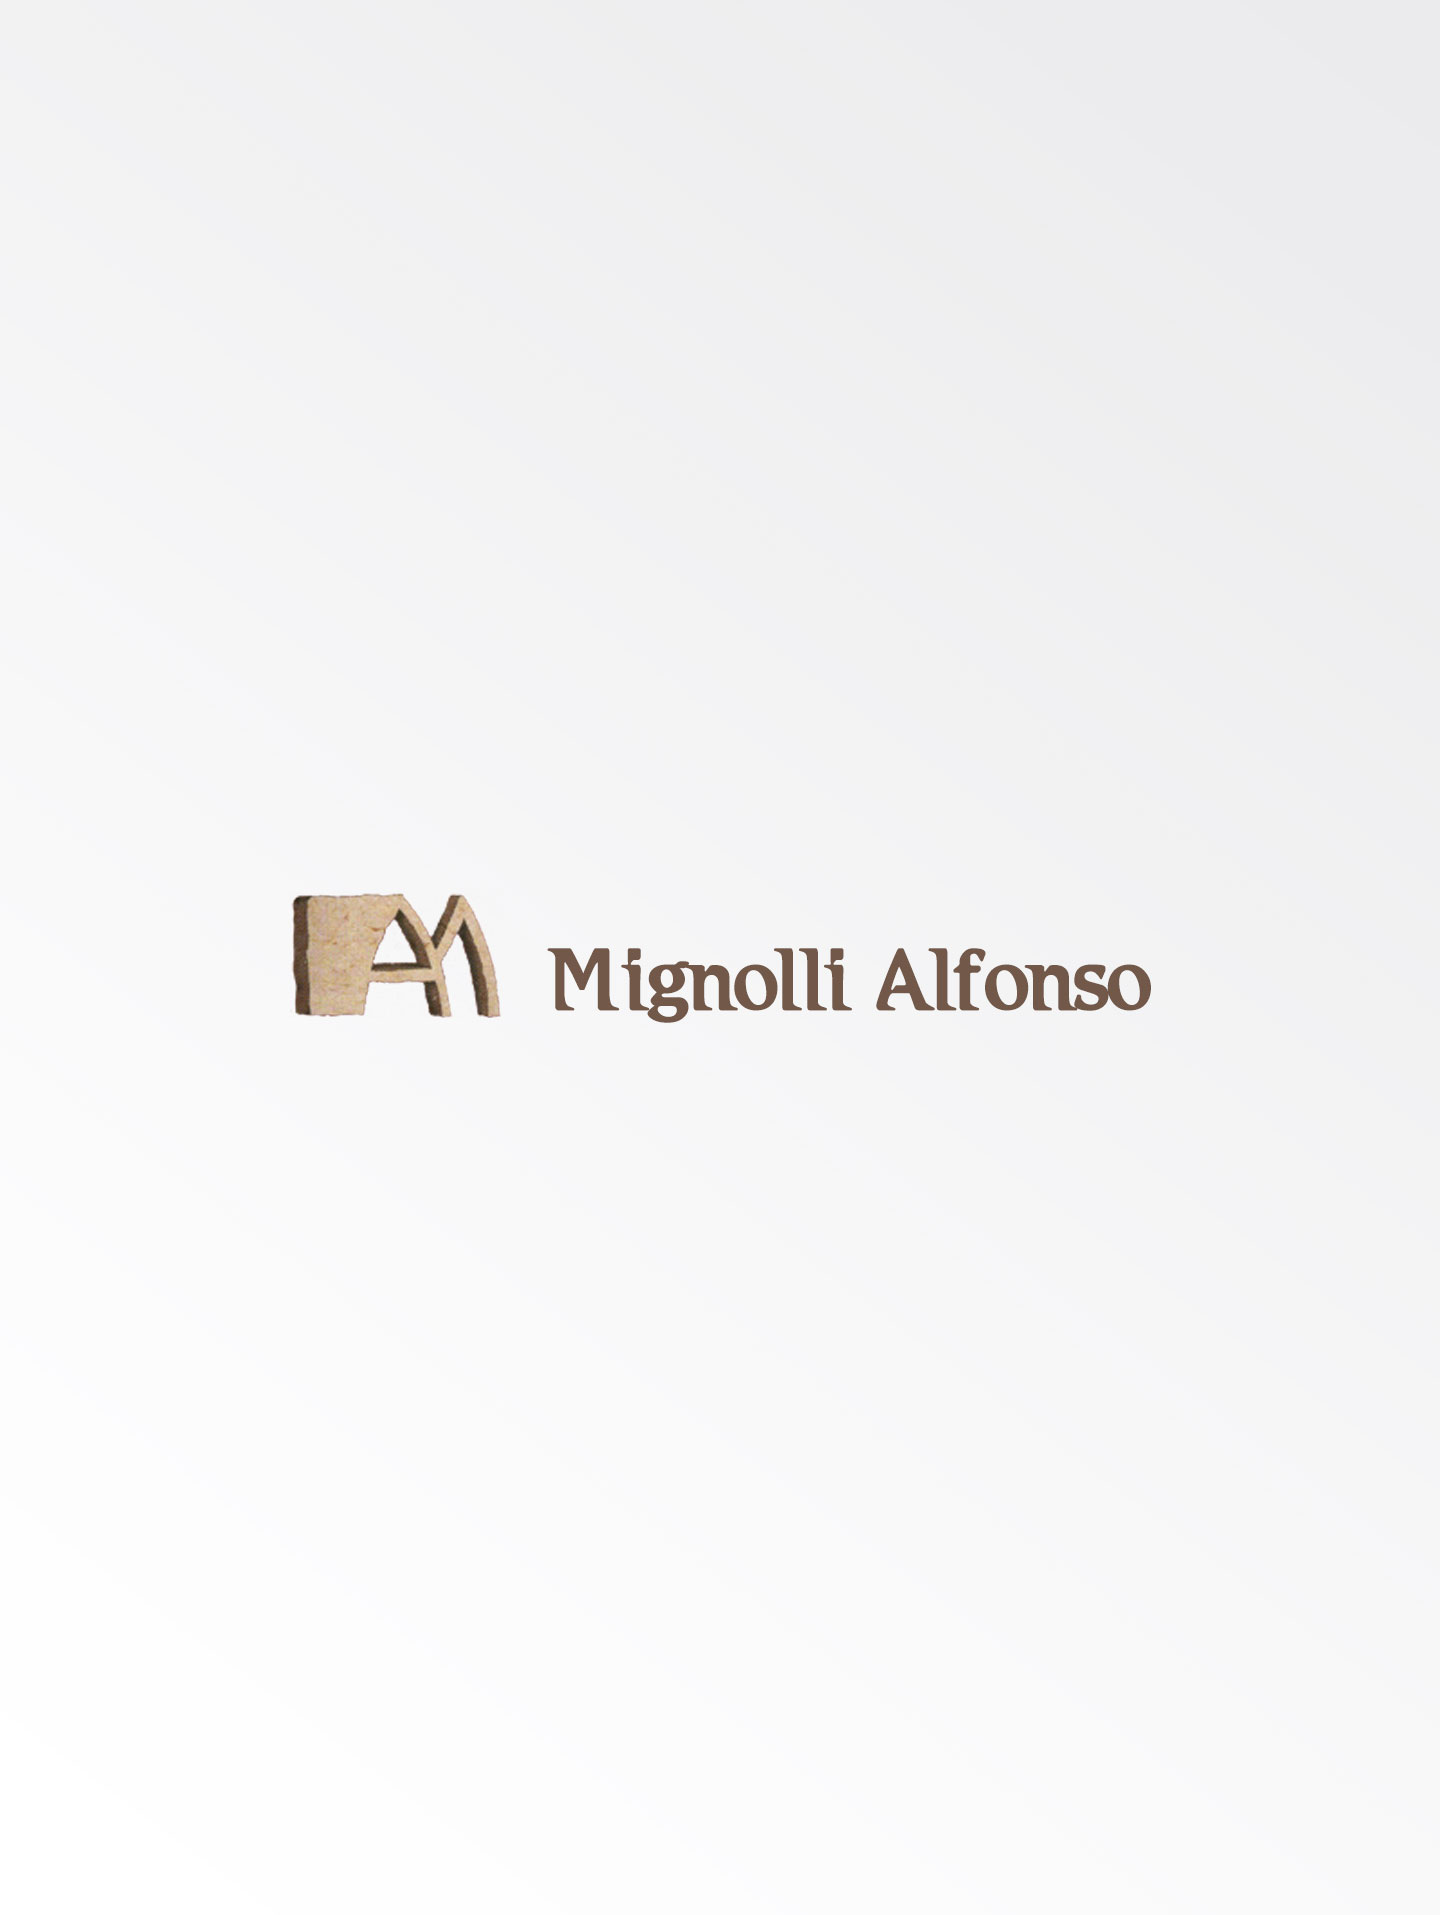 Mignolli Alfonso | Website